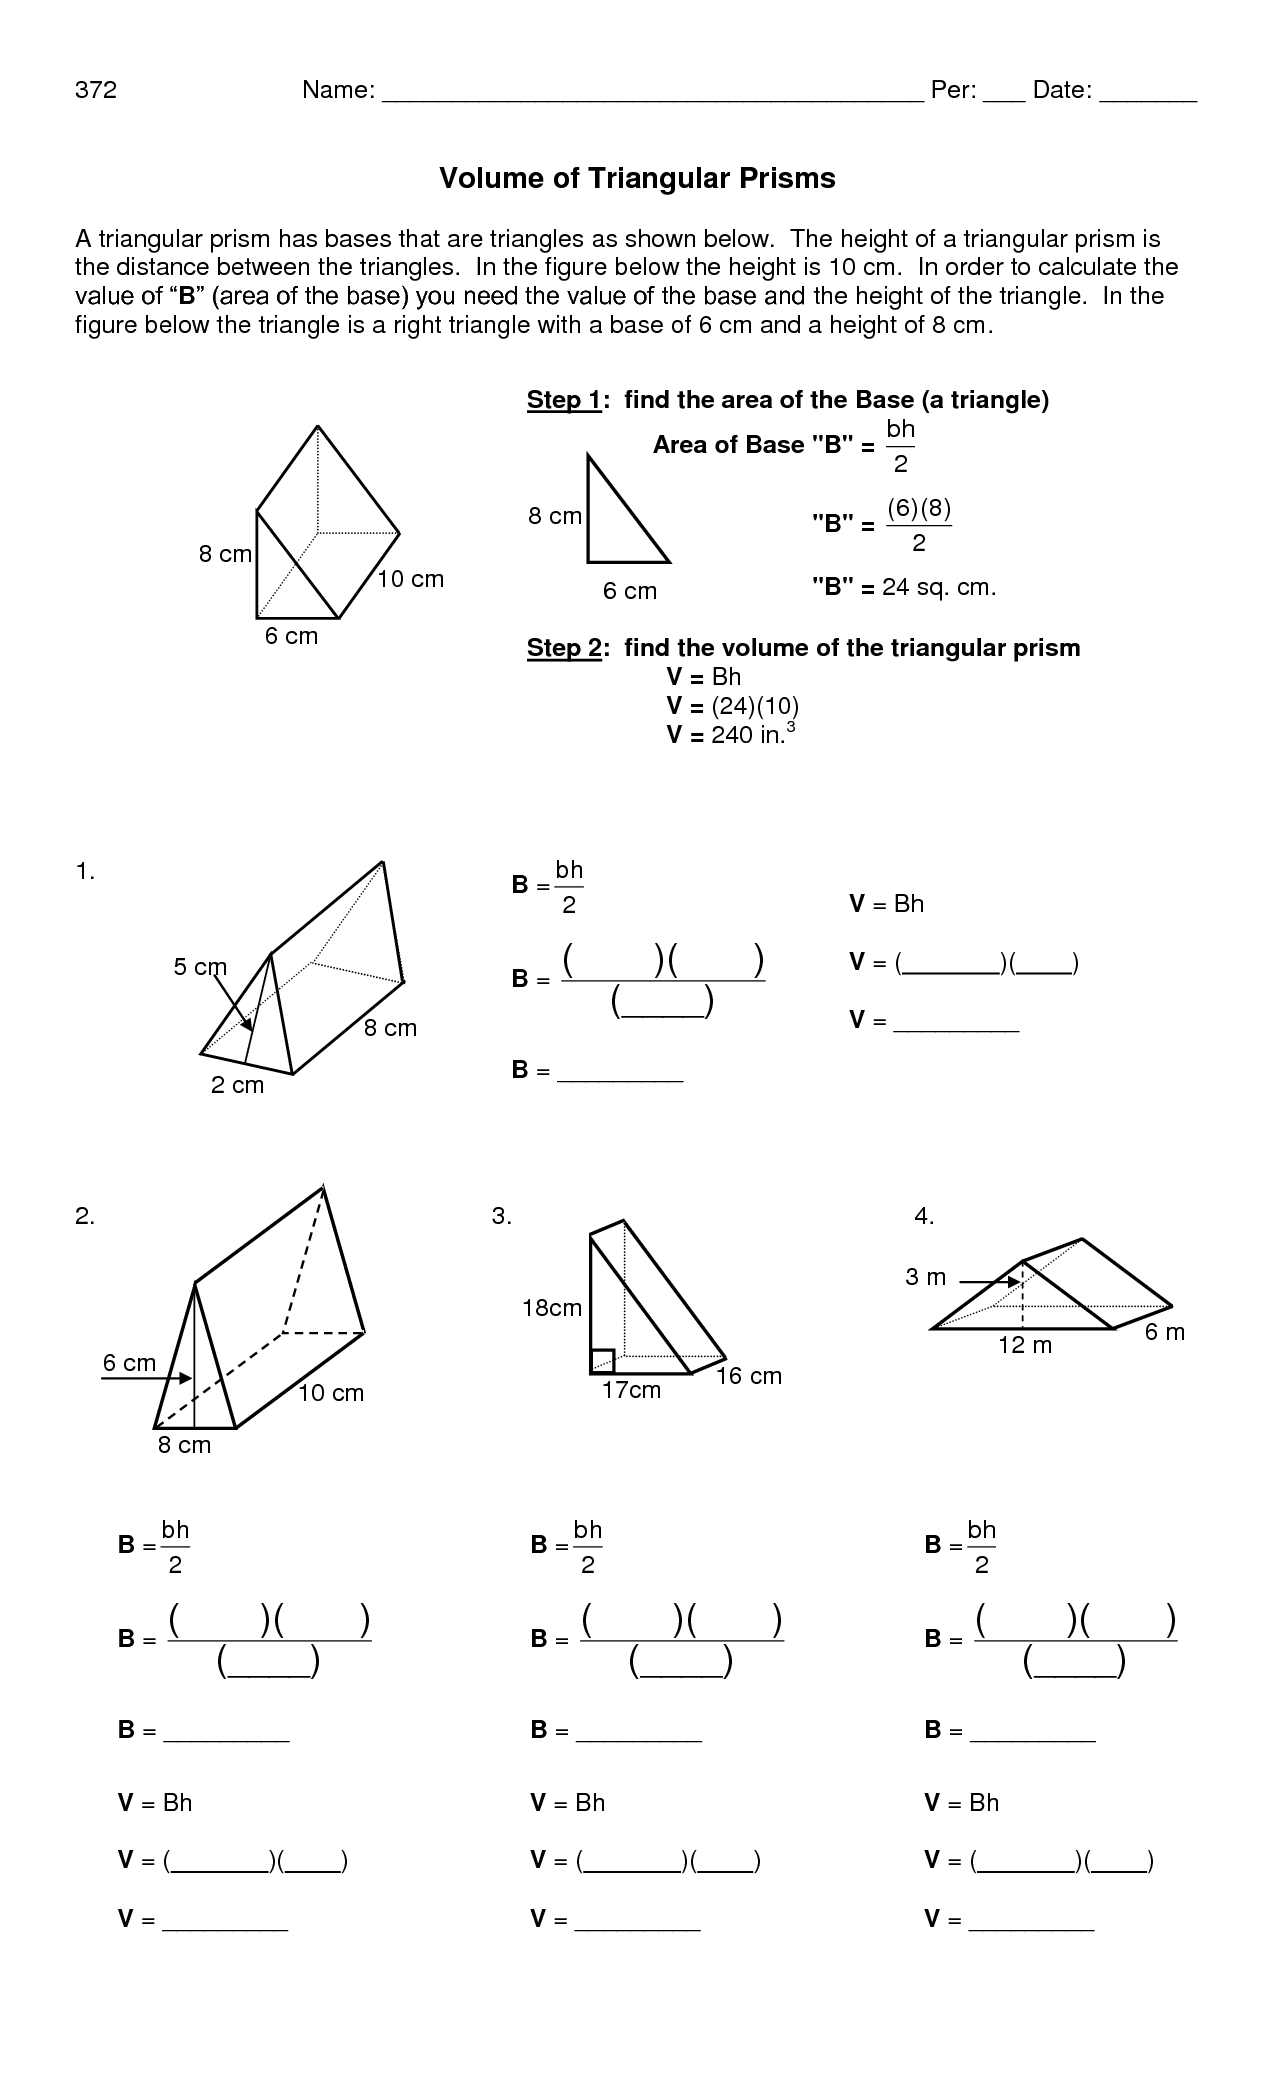 Worksheet For Volume Of Pyramids